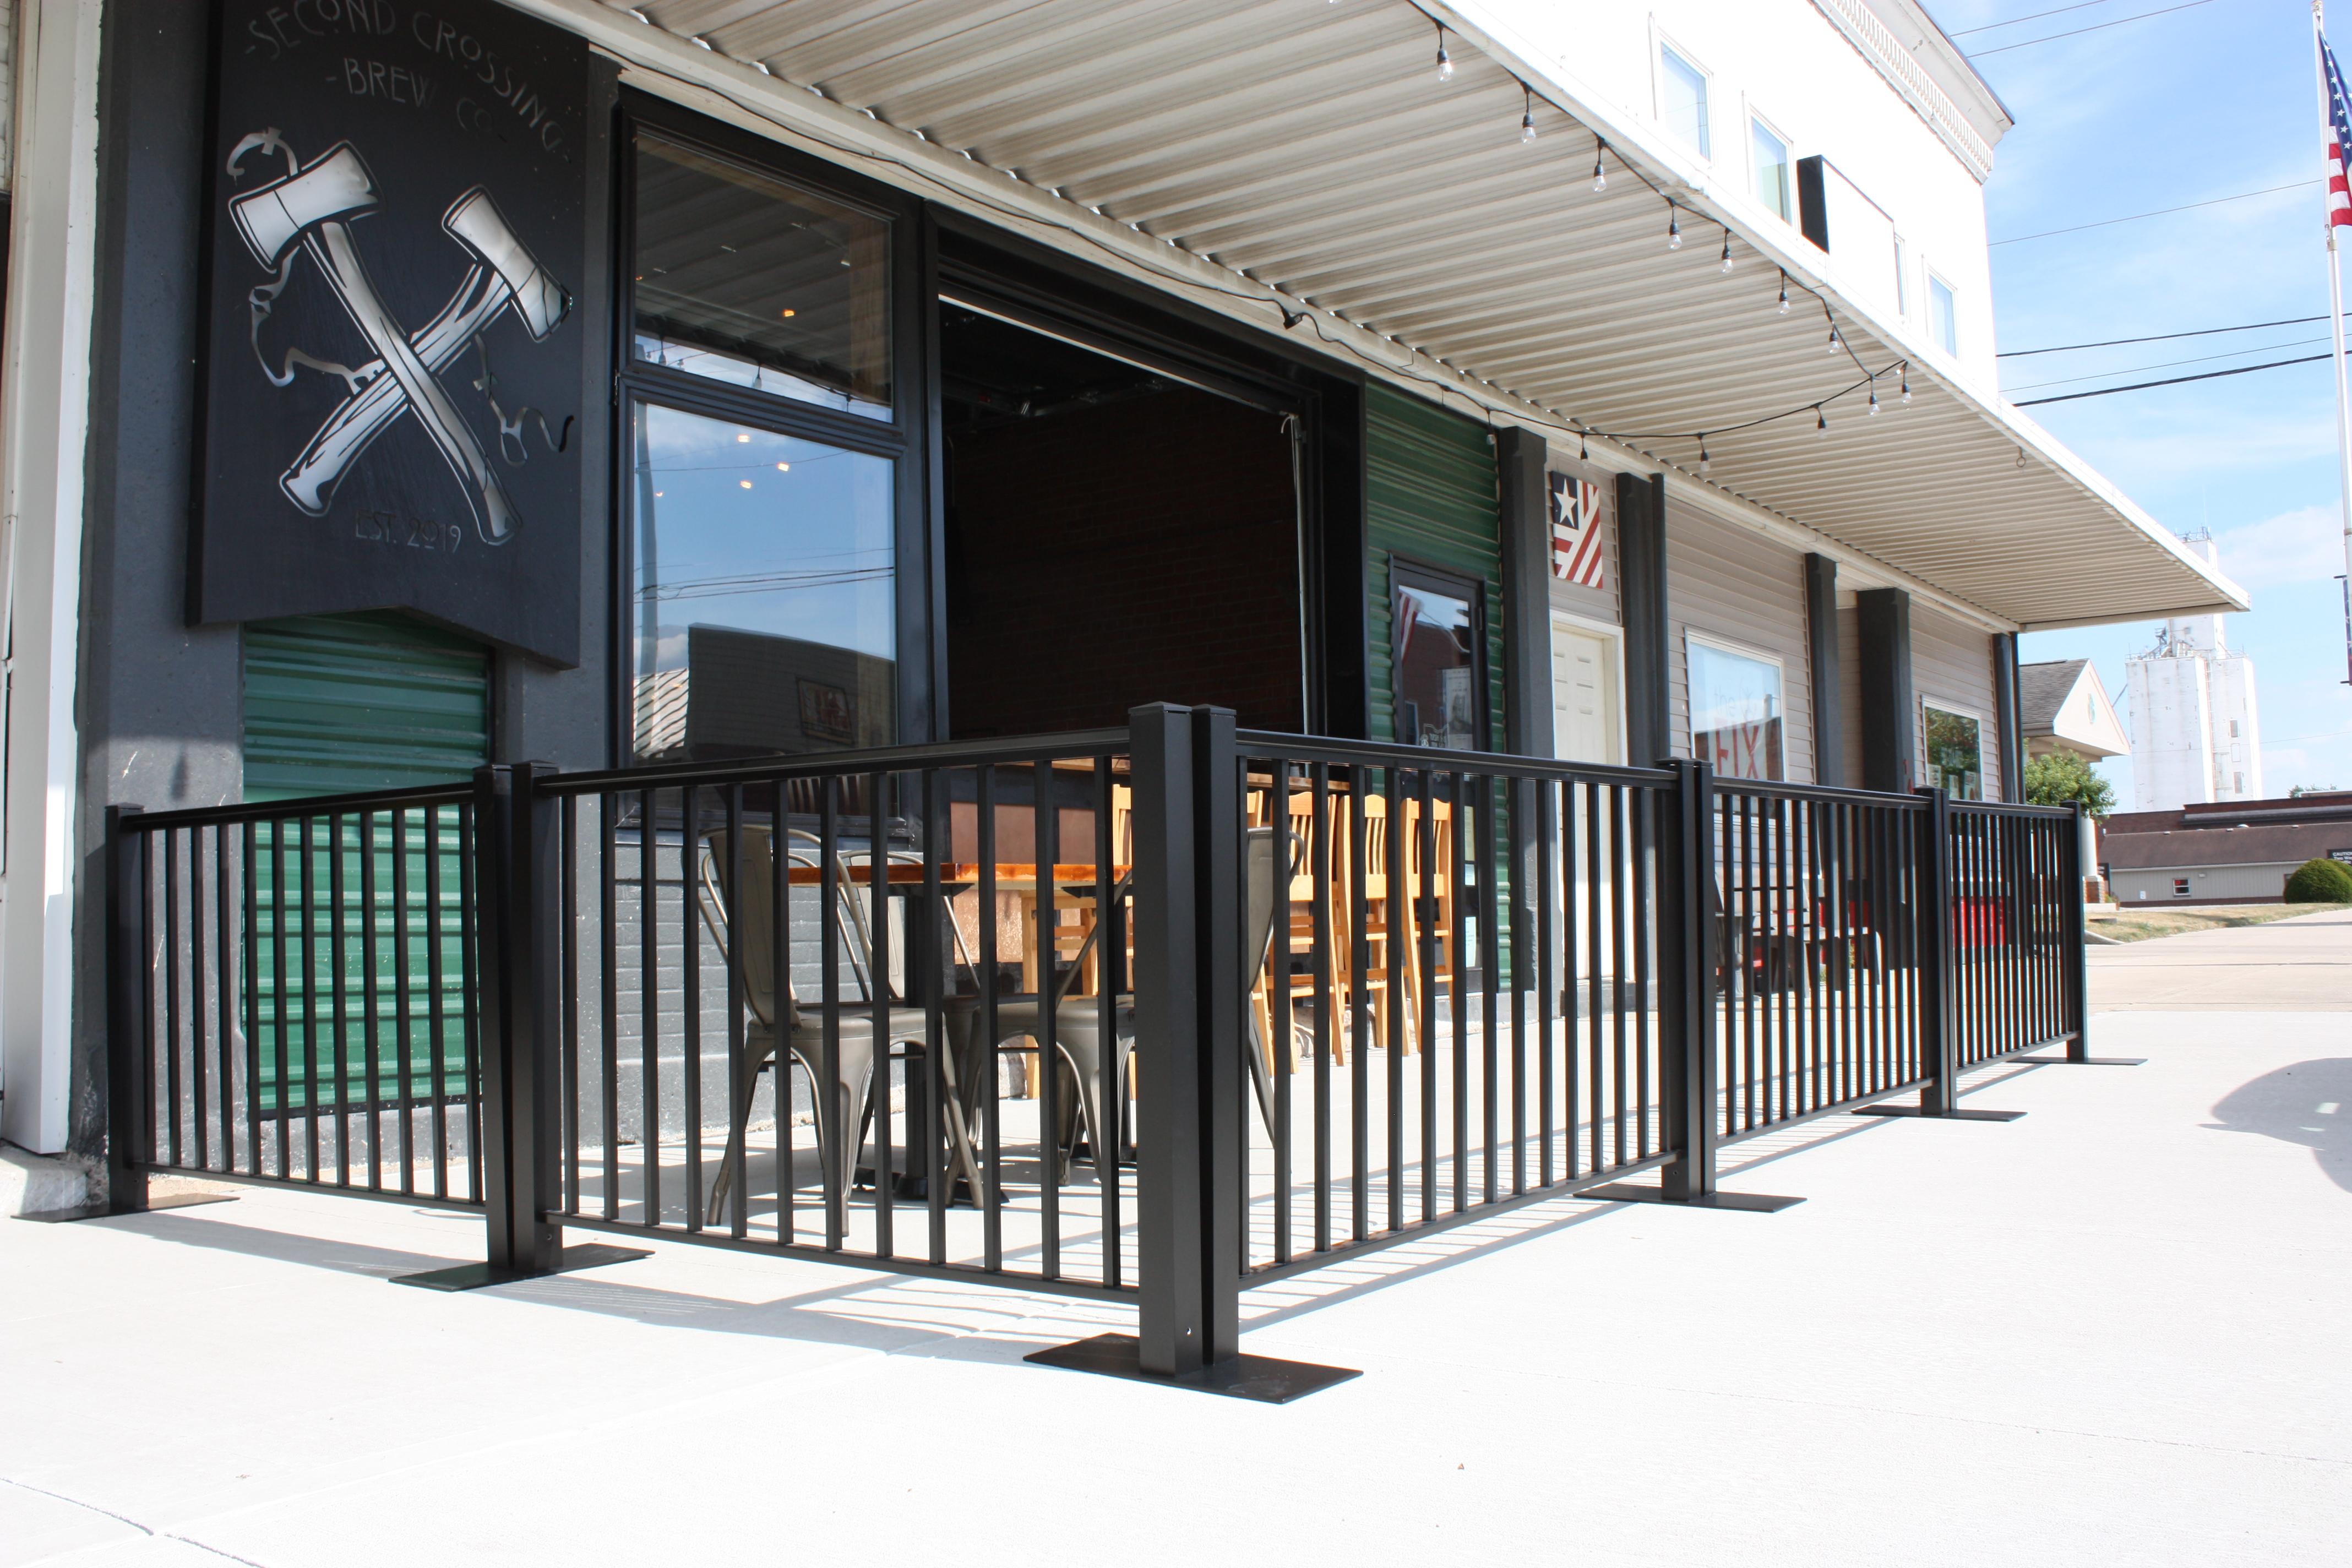 Ready Railing creates an outdoor dining area at a local brewery.